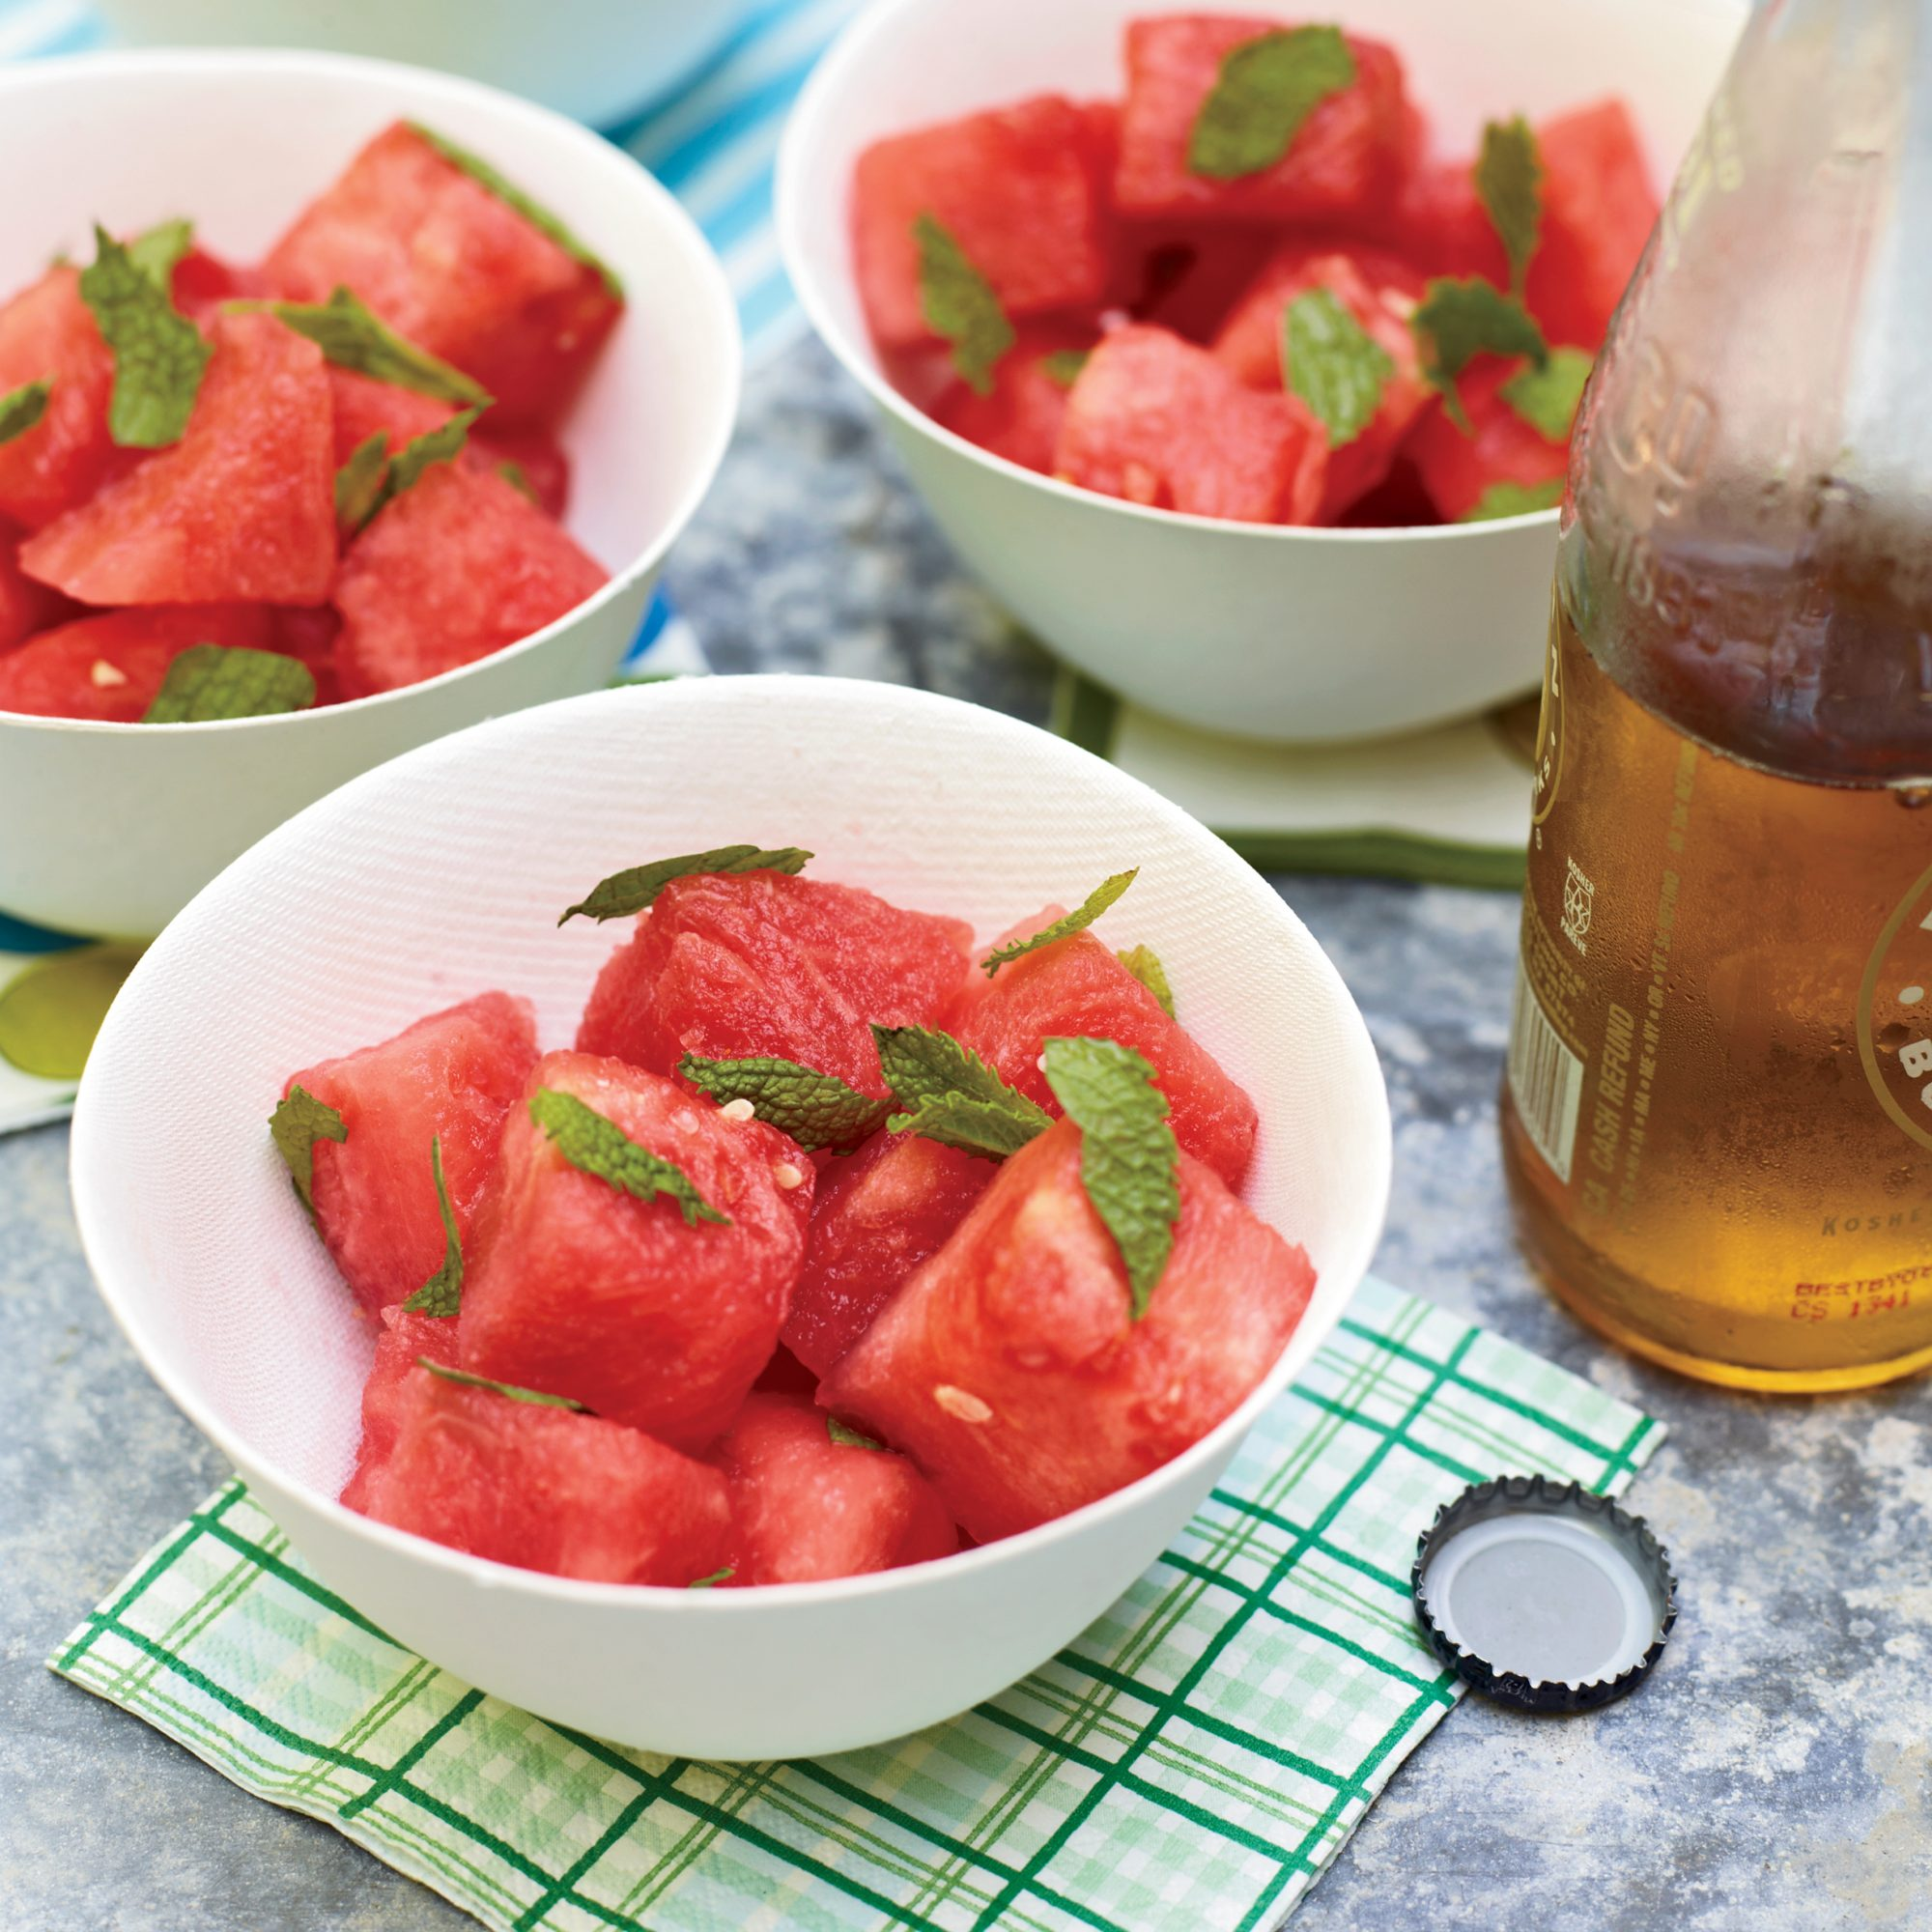 201009-r-mint-watermelon.jpg